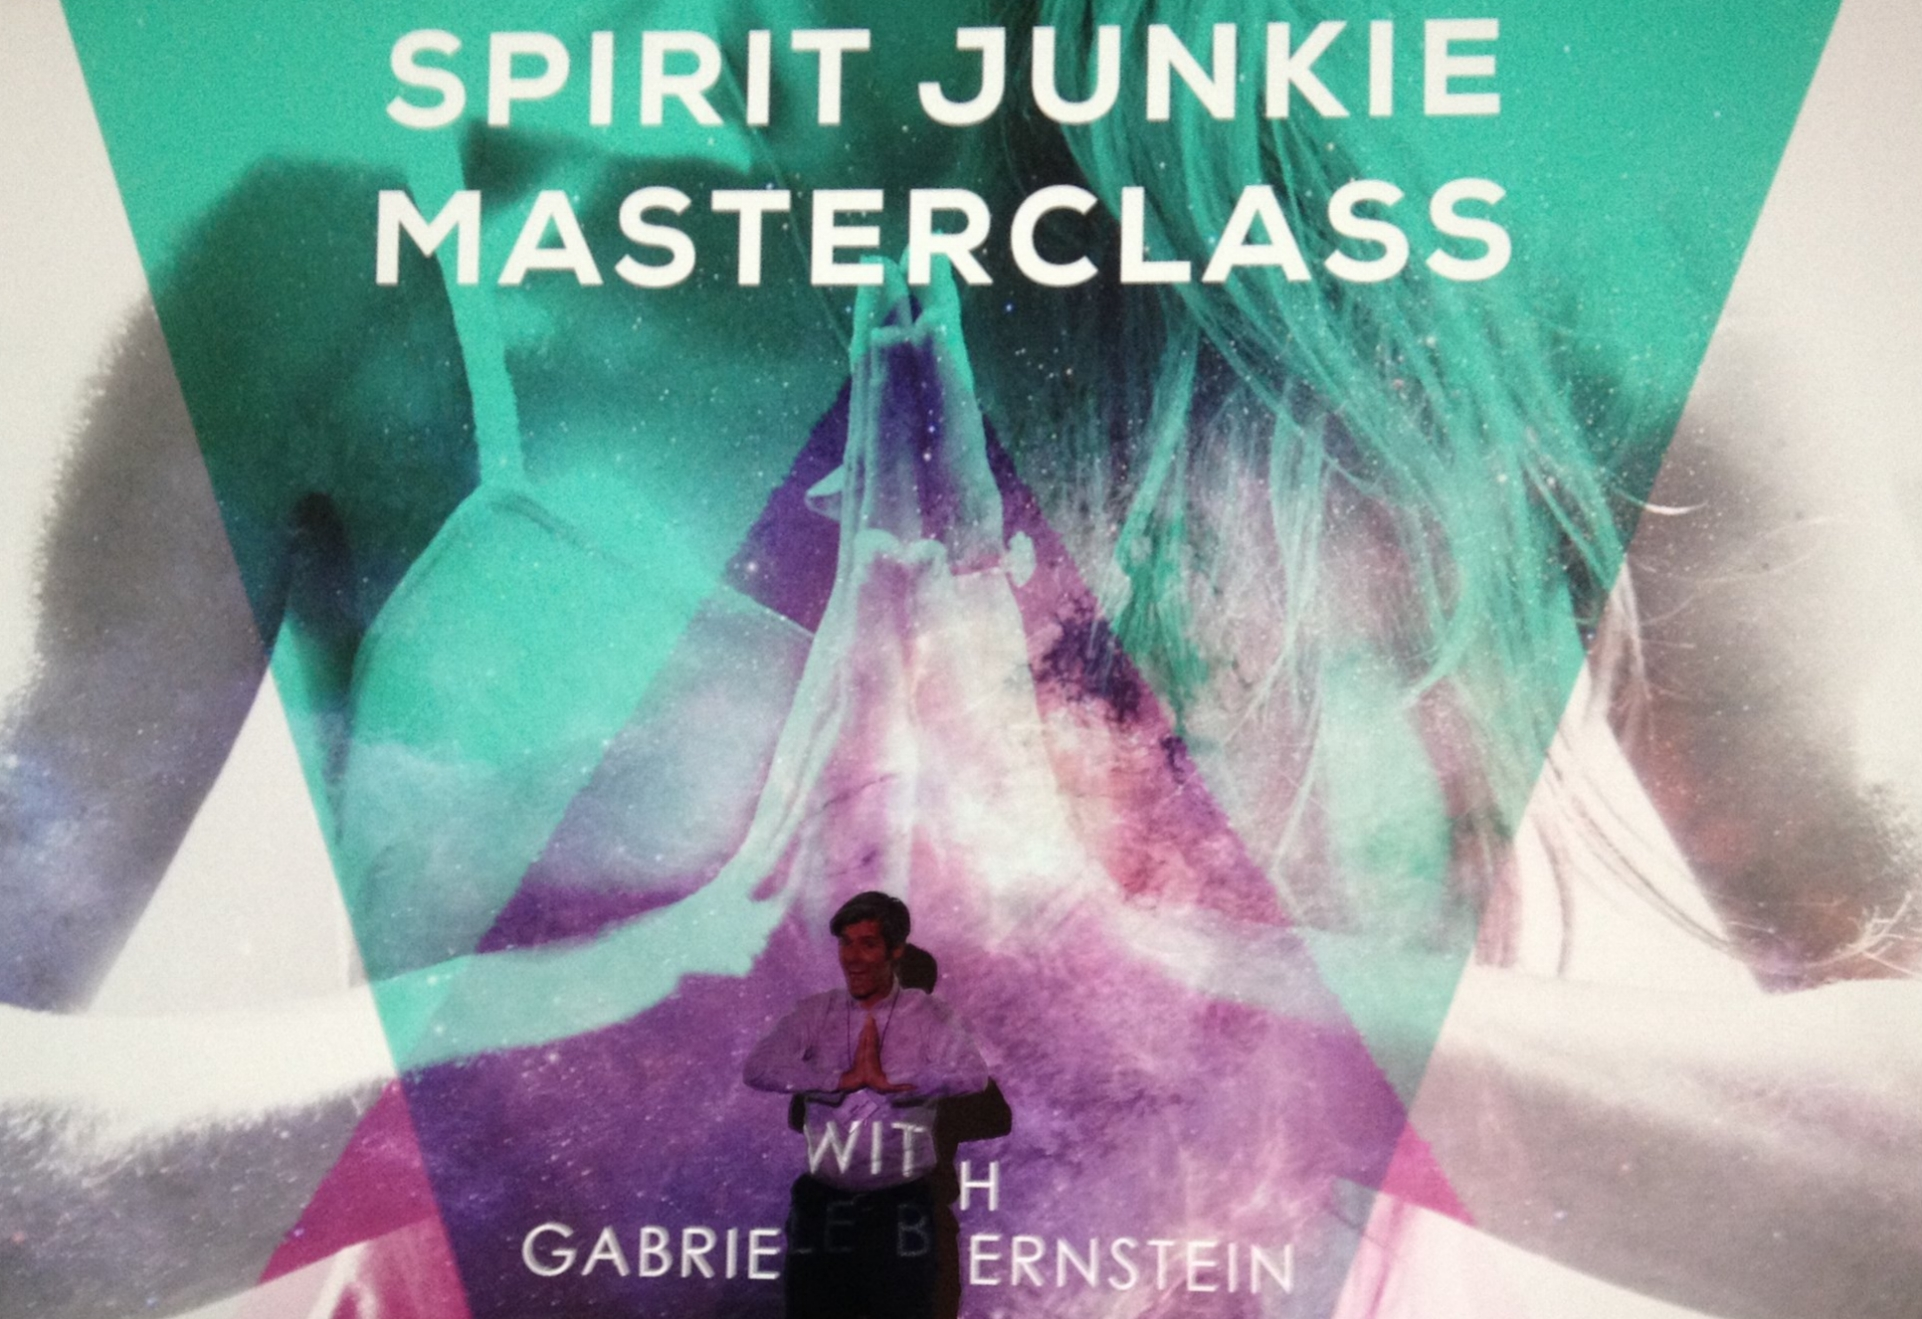 Do you have a story to share? - The Spirit Junkie Masterclass